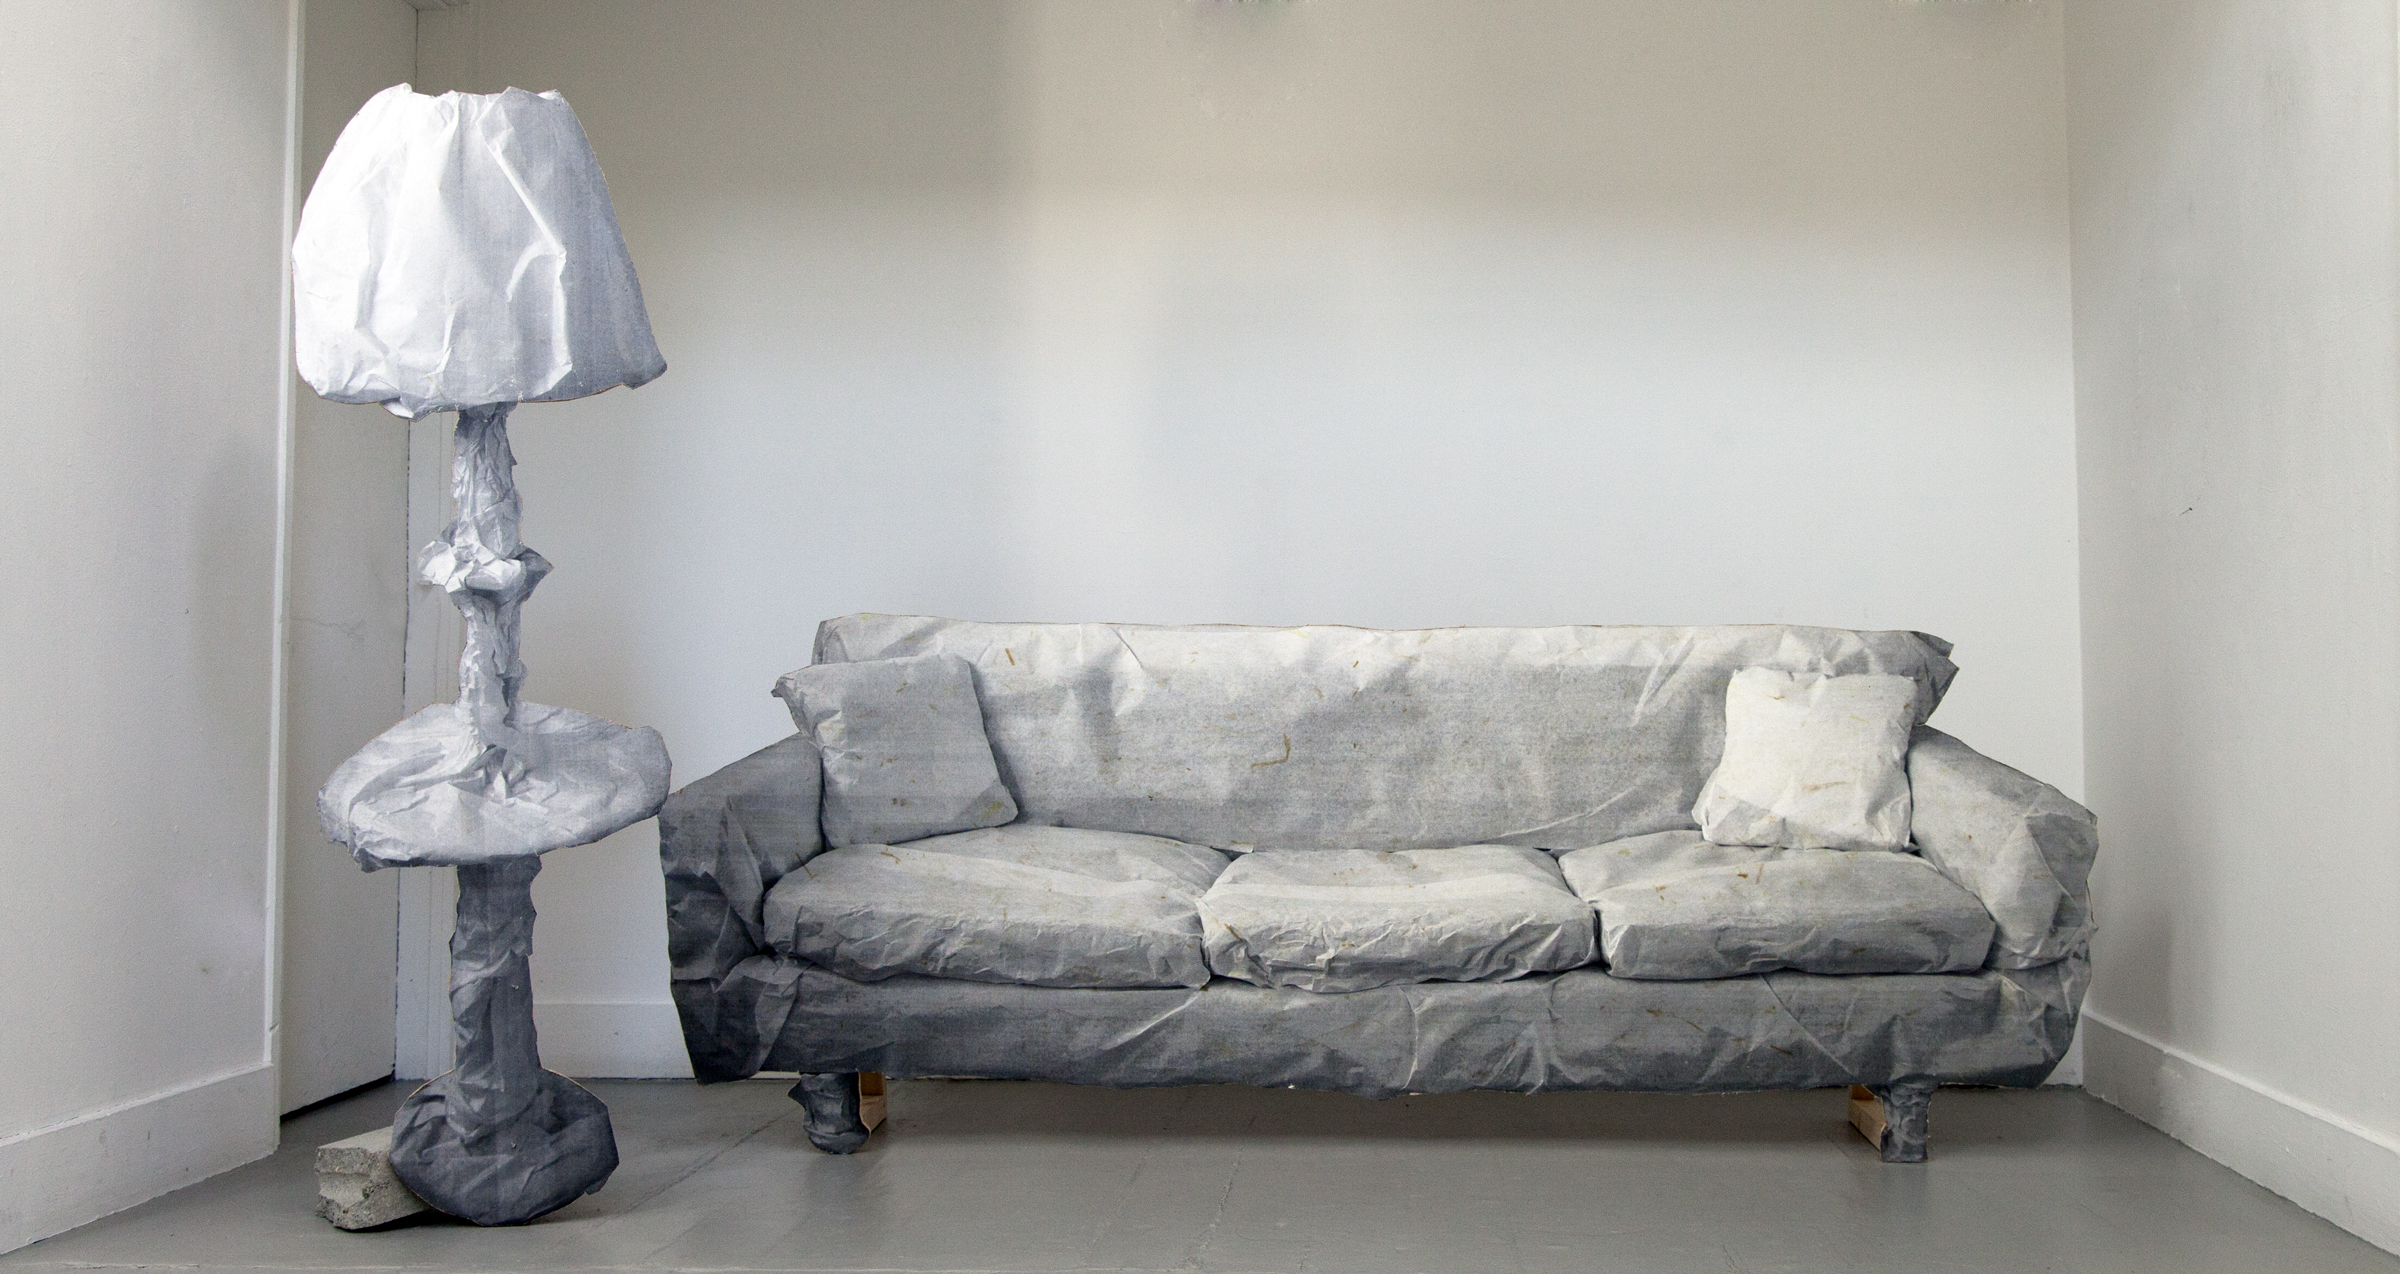 Couch & Lamp, 2016